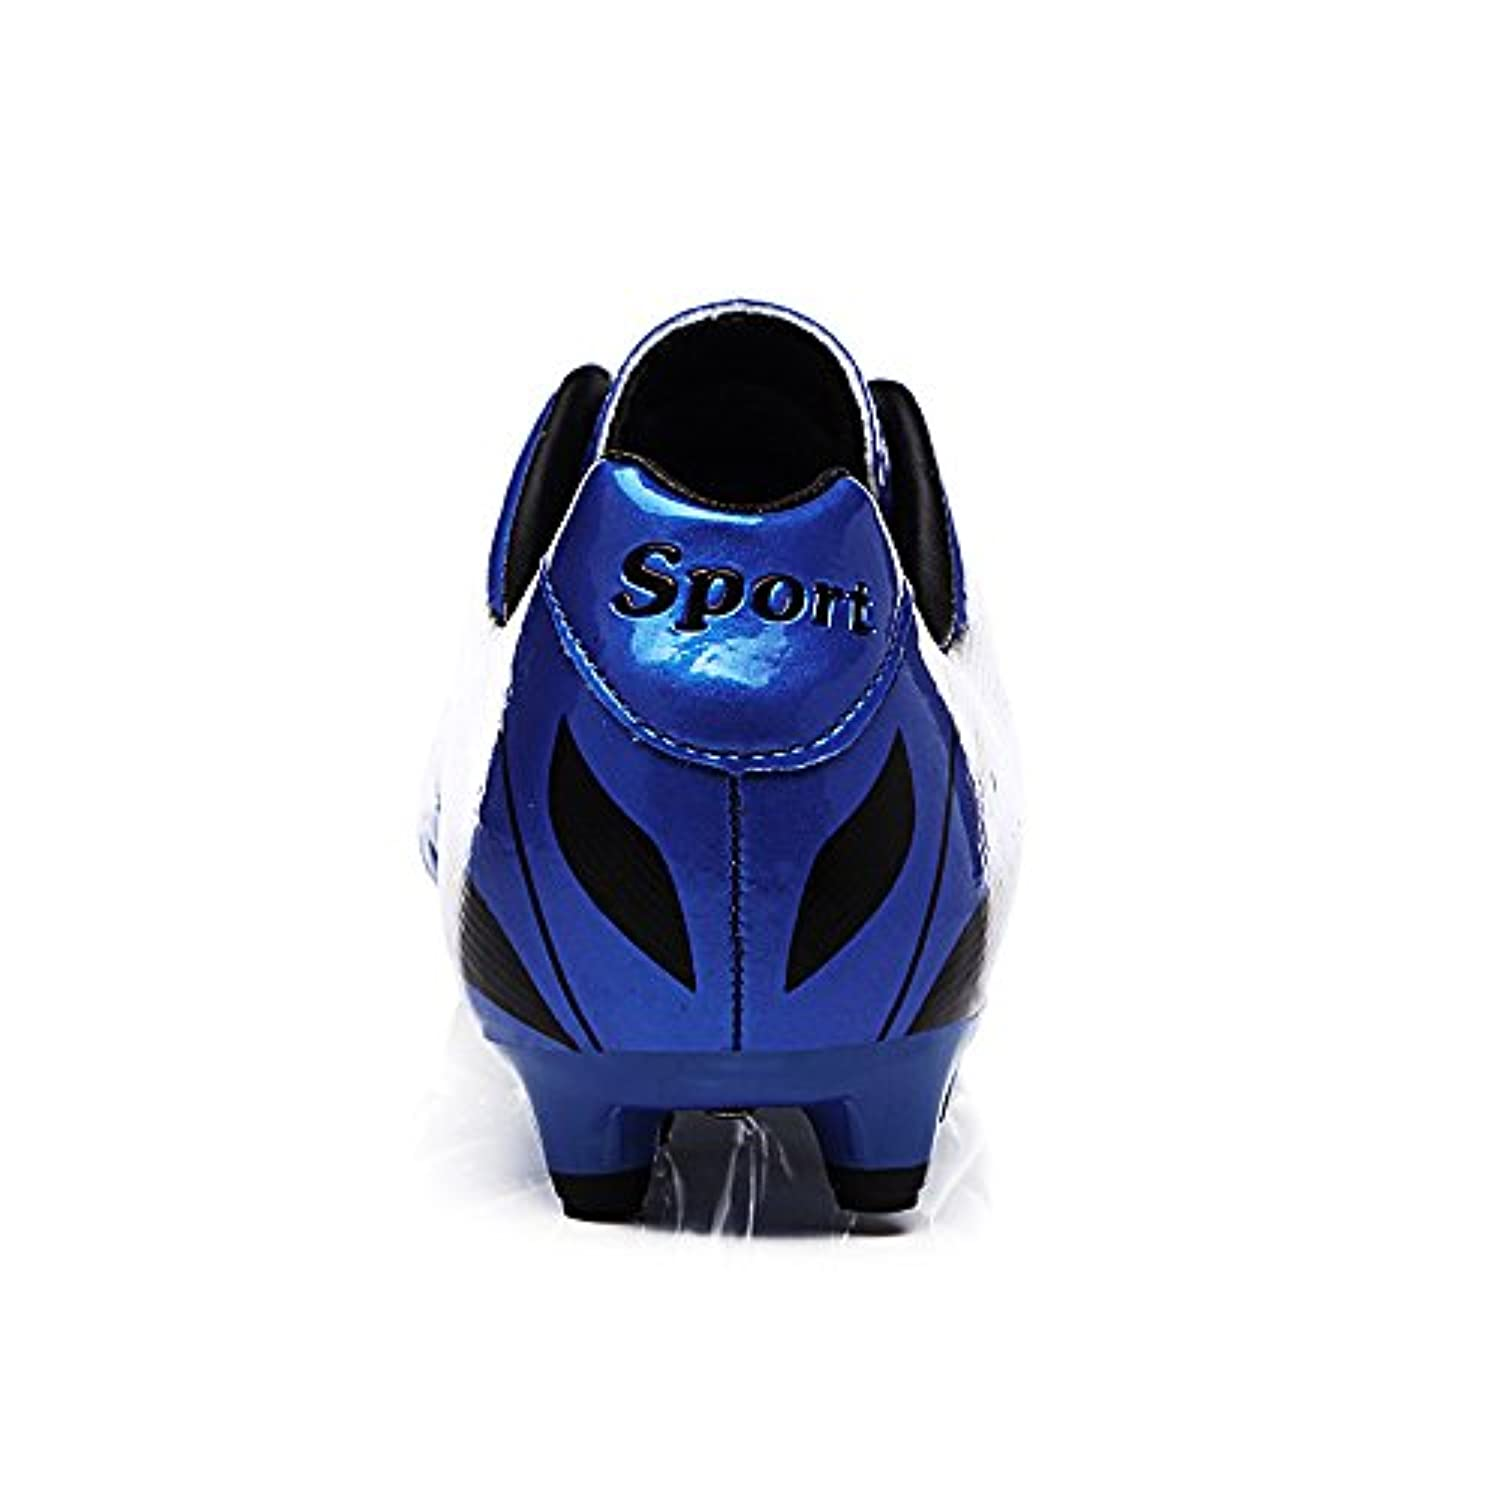 Aleader Boys Girls Football Cleats Rugby Soccer Shoes Blue 2.5 UK